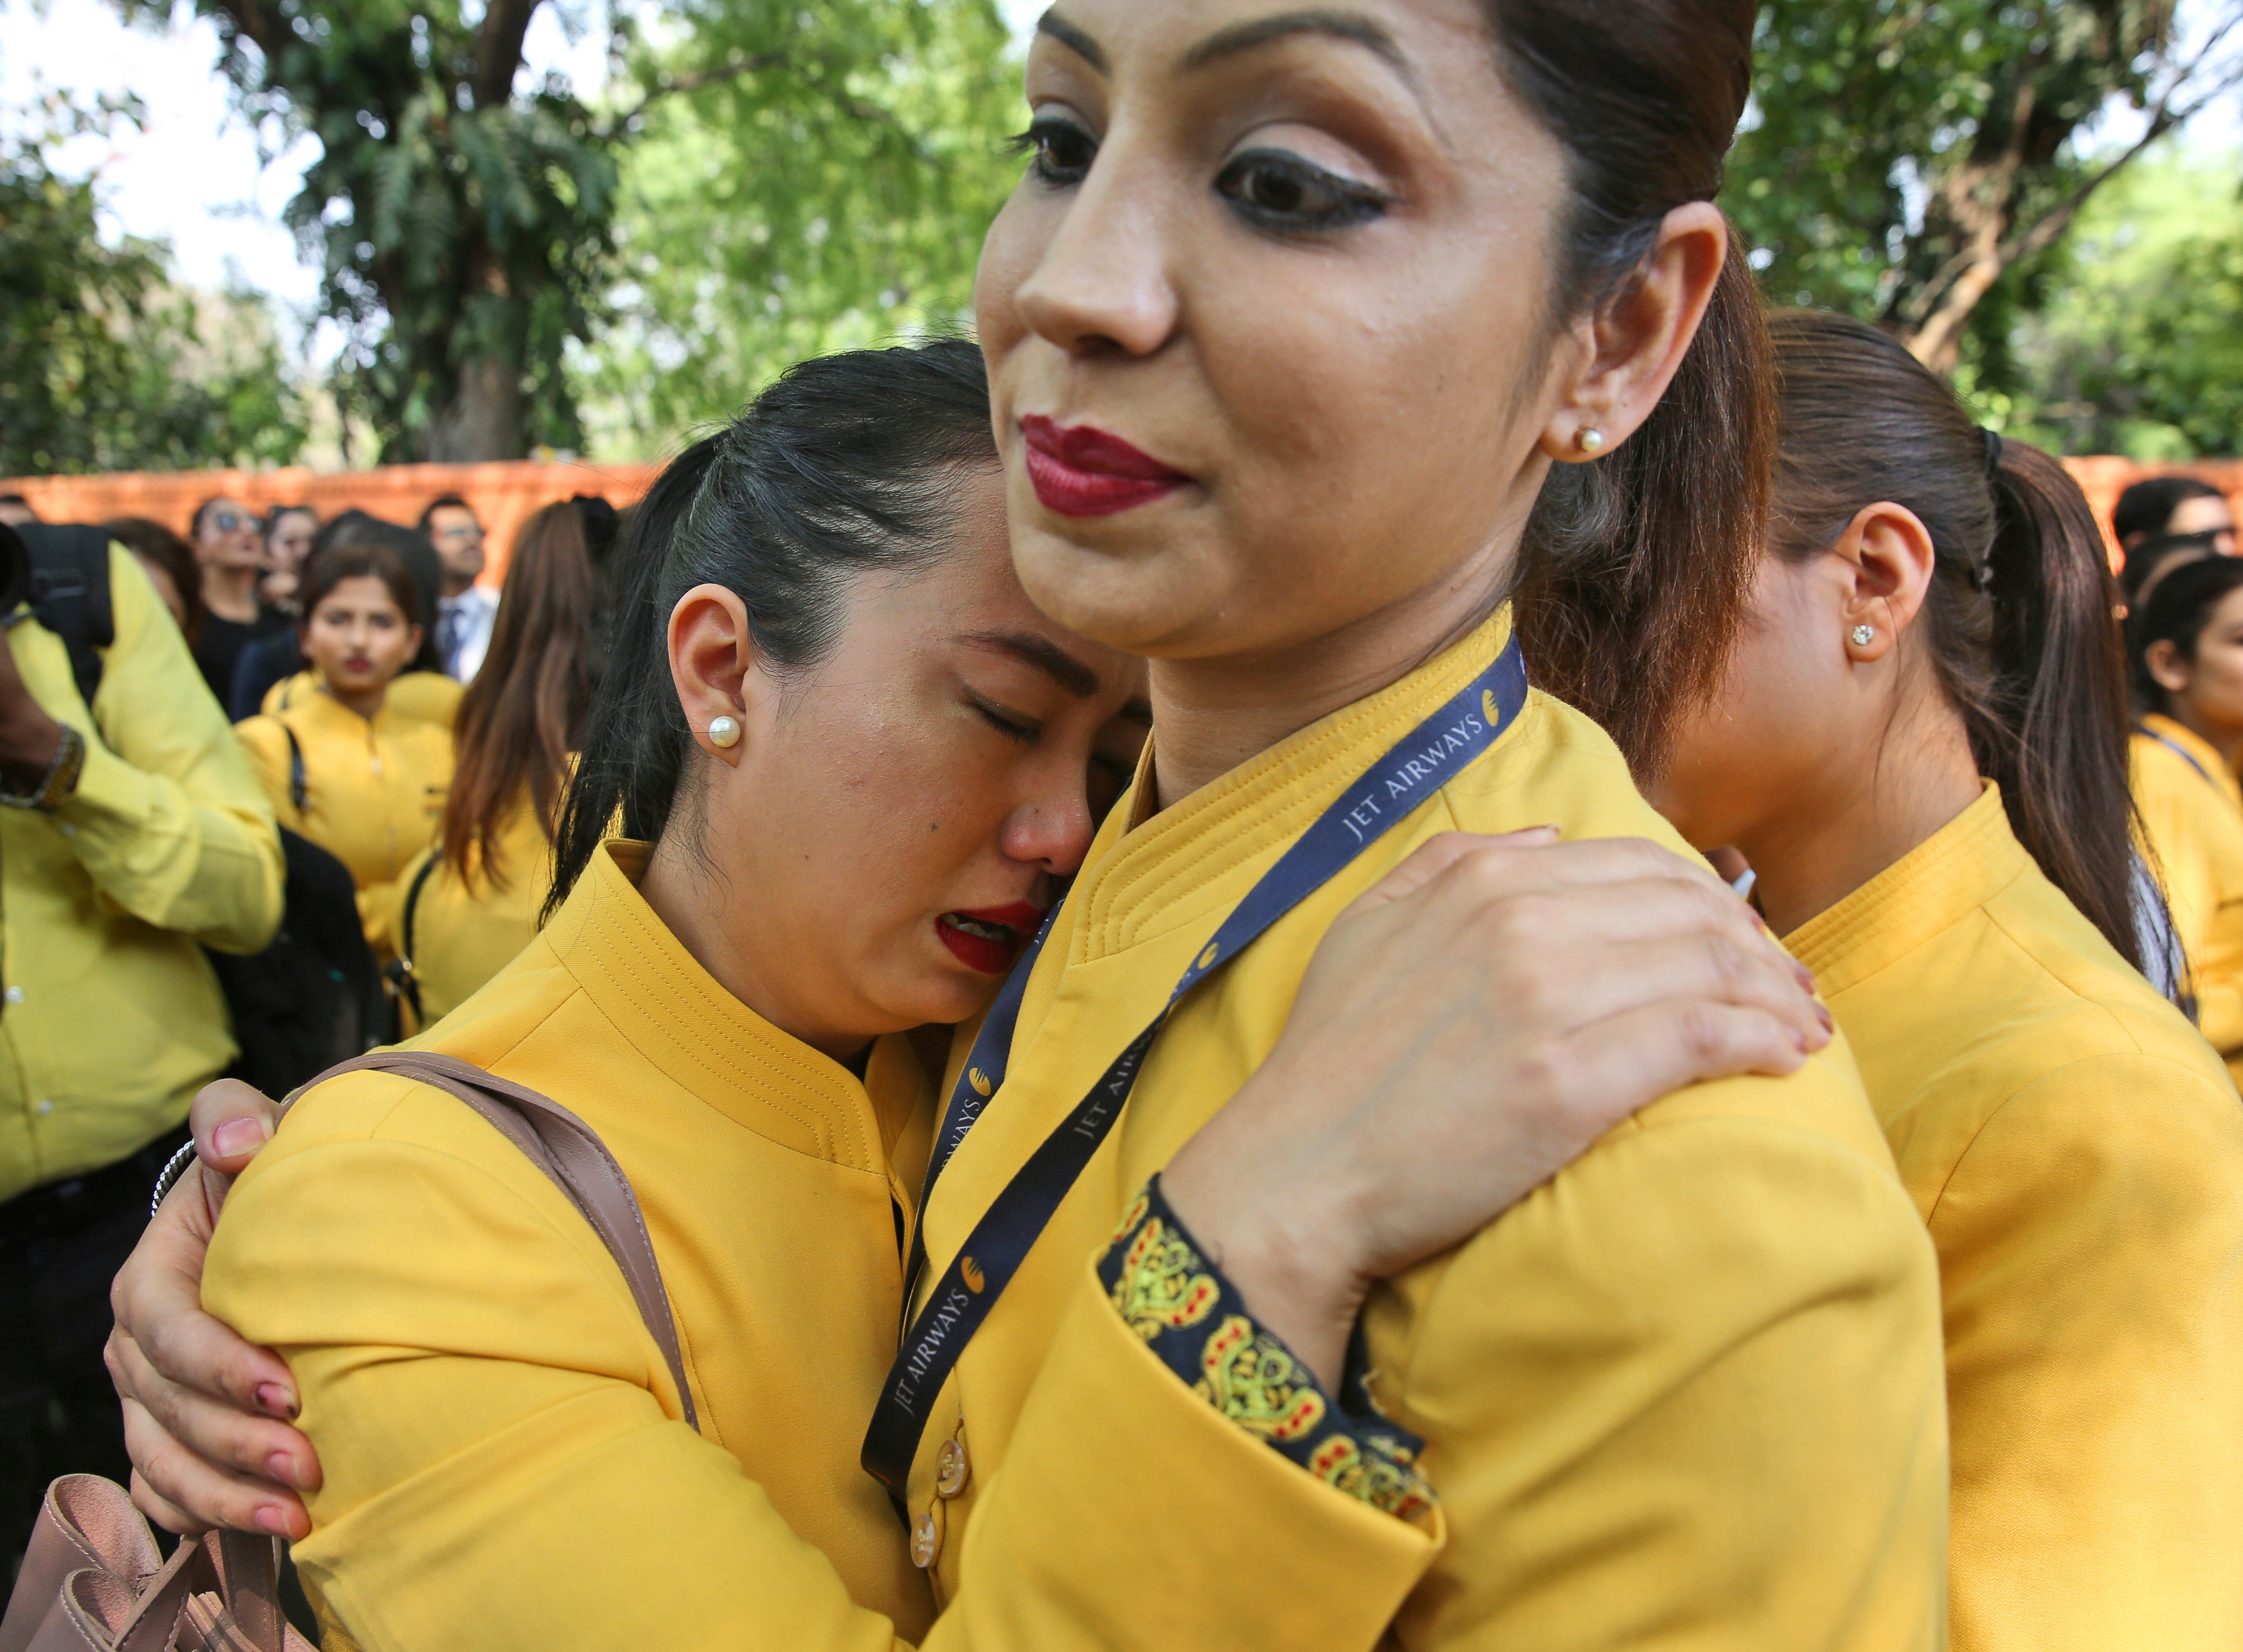 """An employee of Jet Airways cries as she joins colleagues in a gathering to appeal to the government to save their company, in New Delhi, India, Thursday, April 18, 2019. Creditors of India's beleaguered Jet Airways say that they are """"reasonably hopeful"""" that a bidding process with potential investors for a controlling stake in the airline will save the company."""